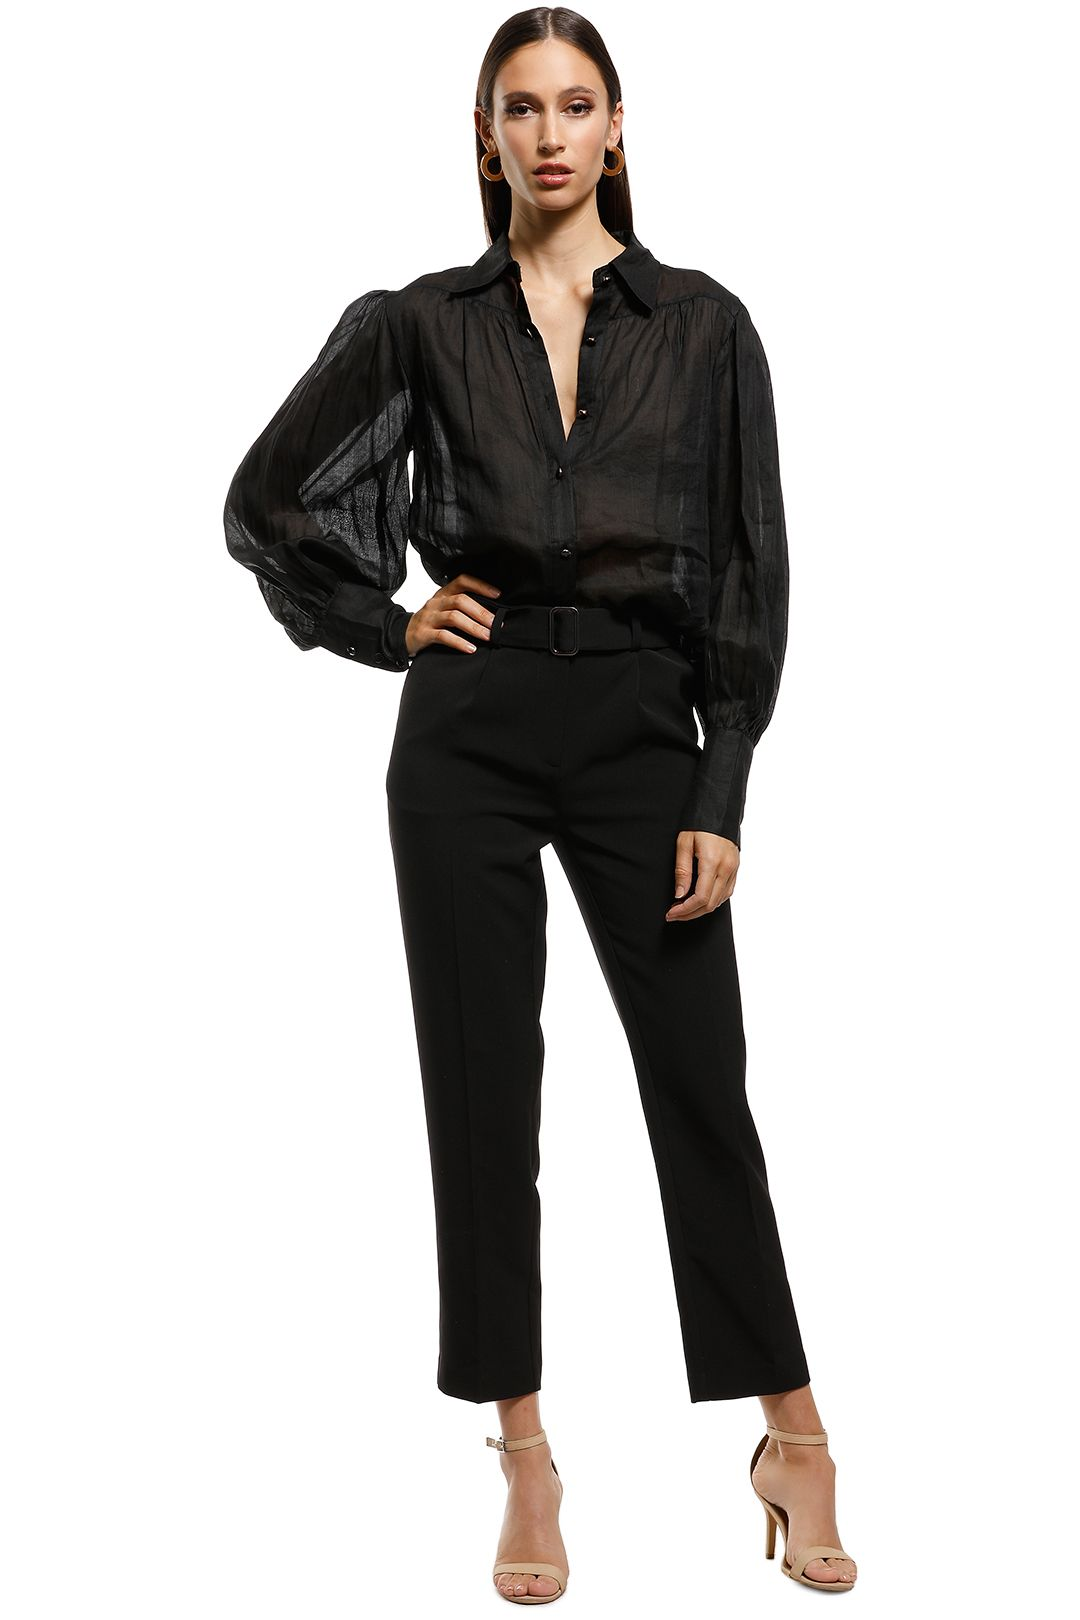 Ministry of Style - Symphony Tailored Shirt - Black - Front